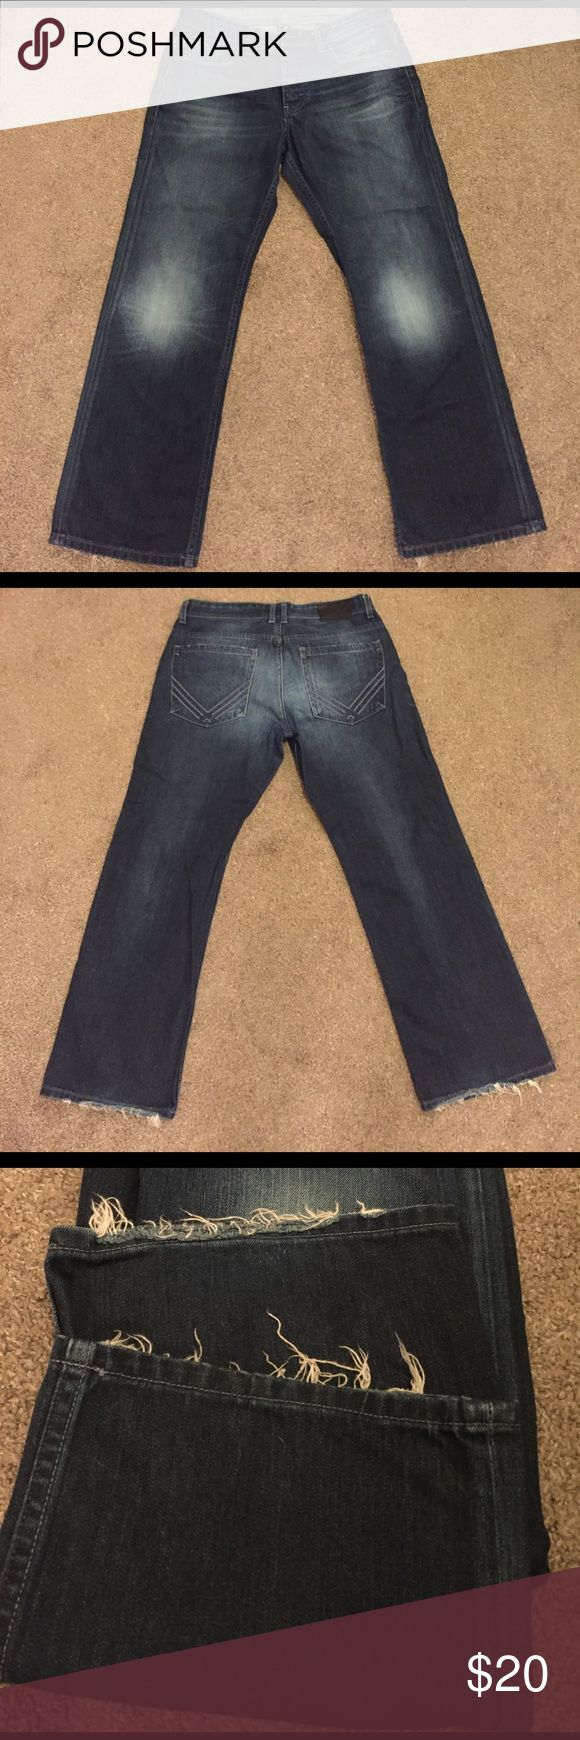 Armani Exchange 36x32 boot cut jeans. Little fraying at the leg openings otherwise great condition. A/X Armani Exchange Jeans Bootcut